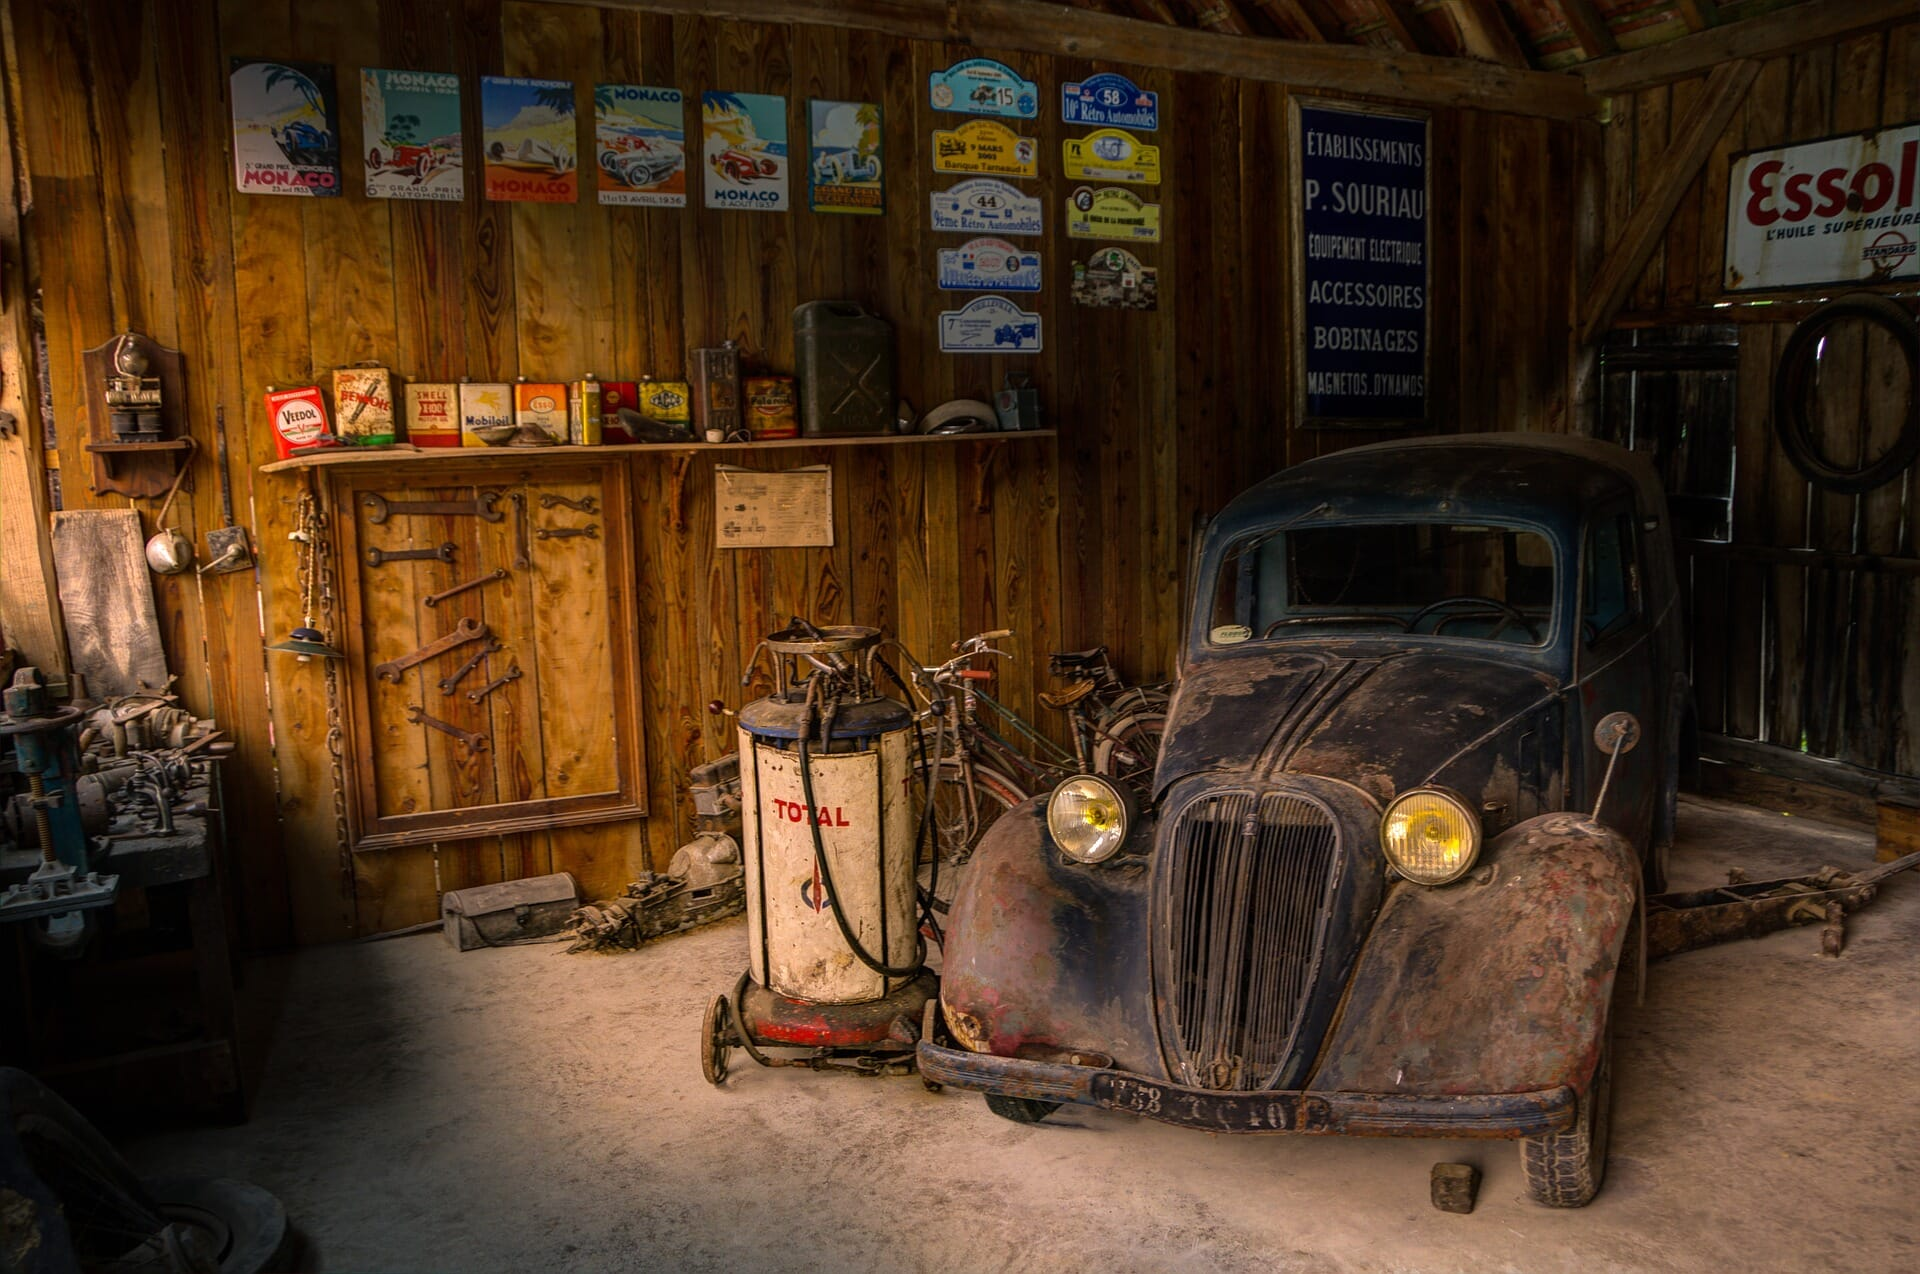 A reminder of what garages use to look like in a simpler time before the internet